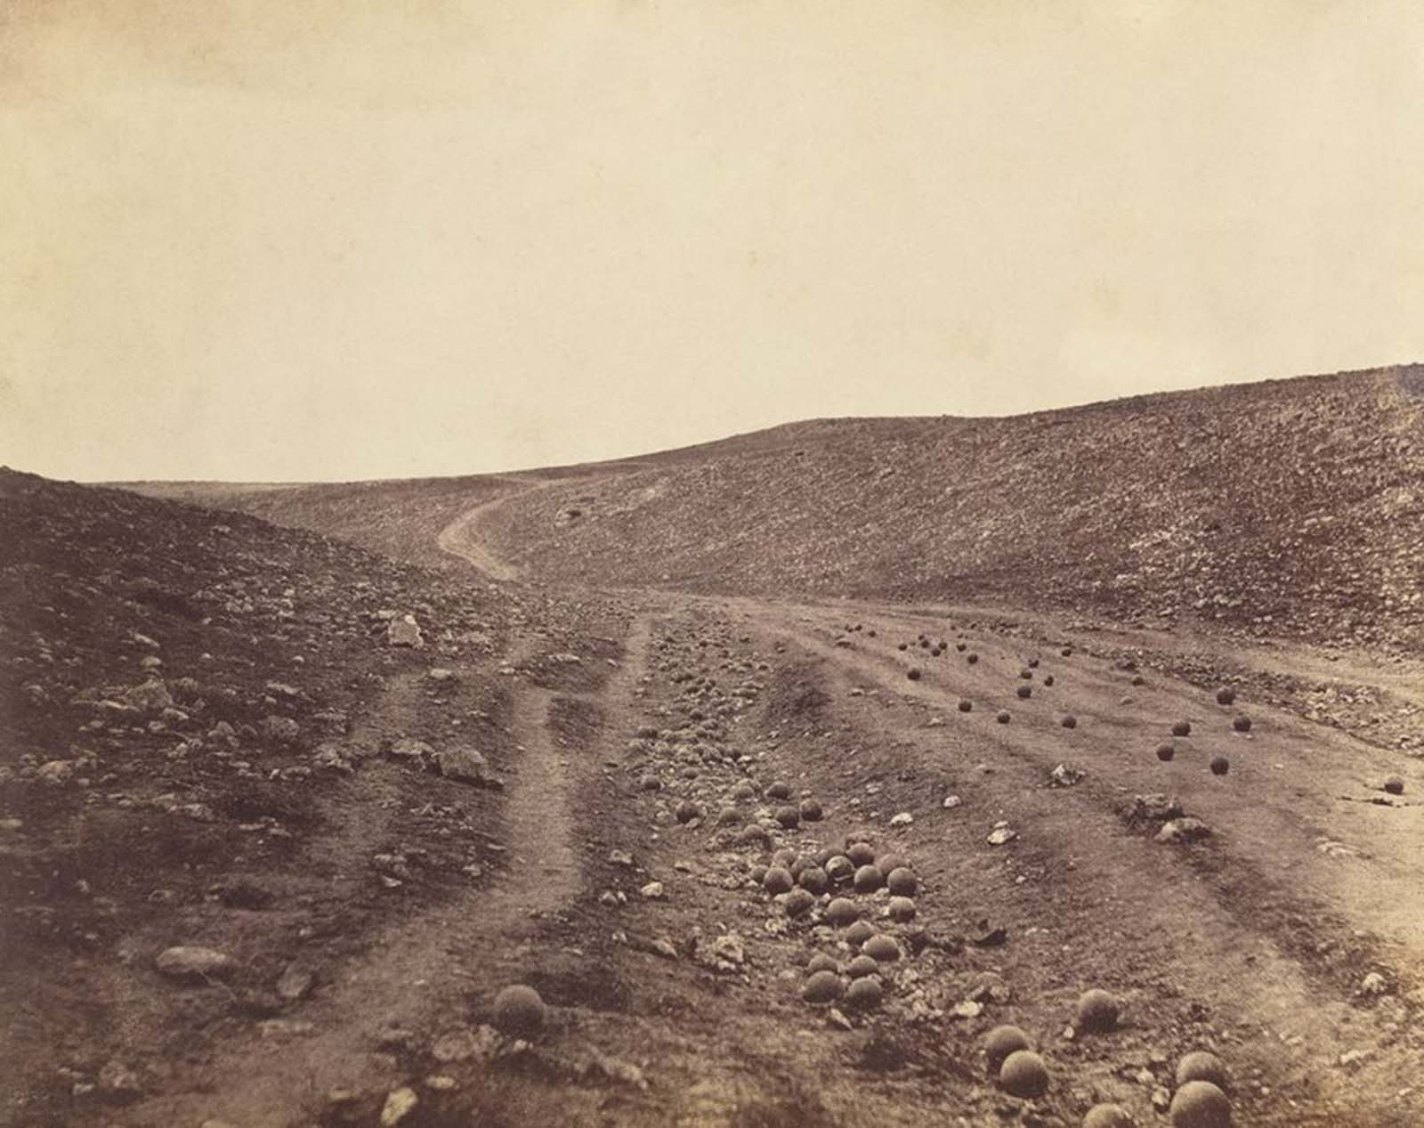 historical combat photos The Valley of the Shadow of Death, Roger Fenton, 1855